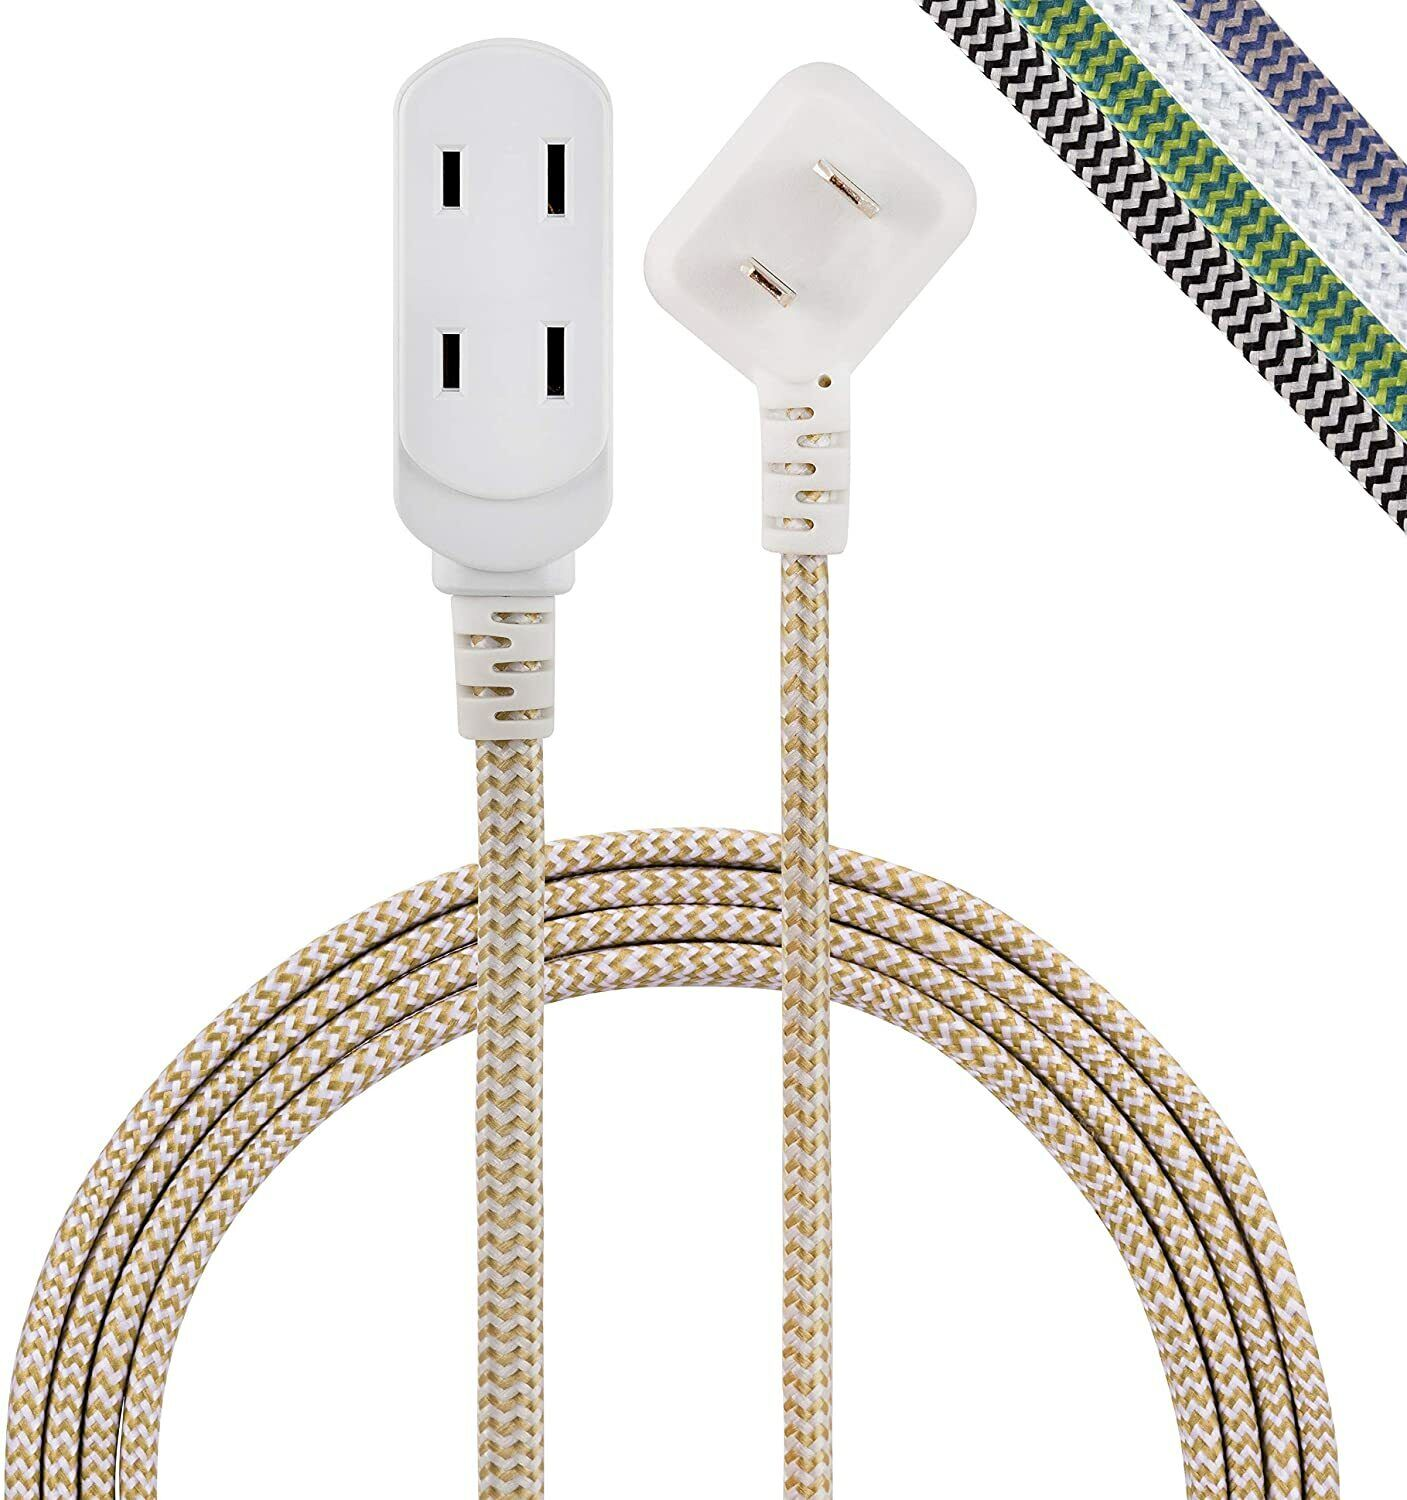 Electrical Extension Cords Braided Fabric Cable Flat Plug Polarized Tan/White